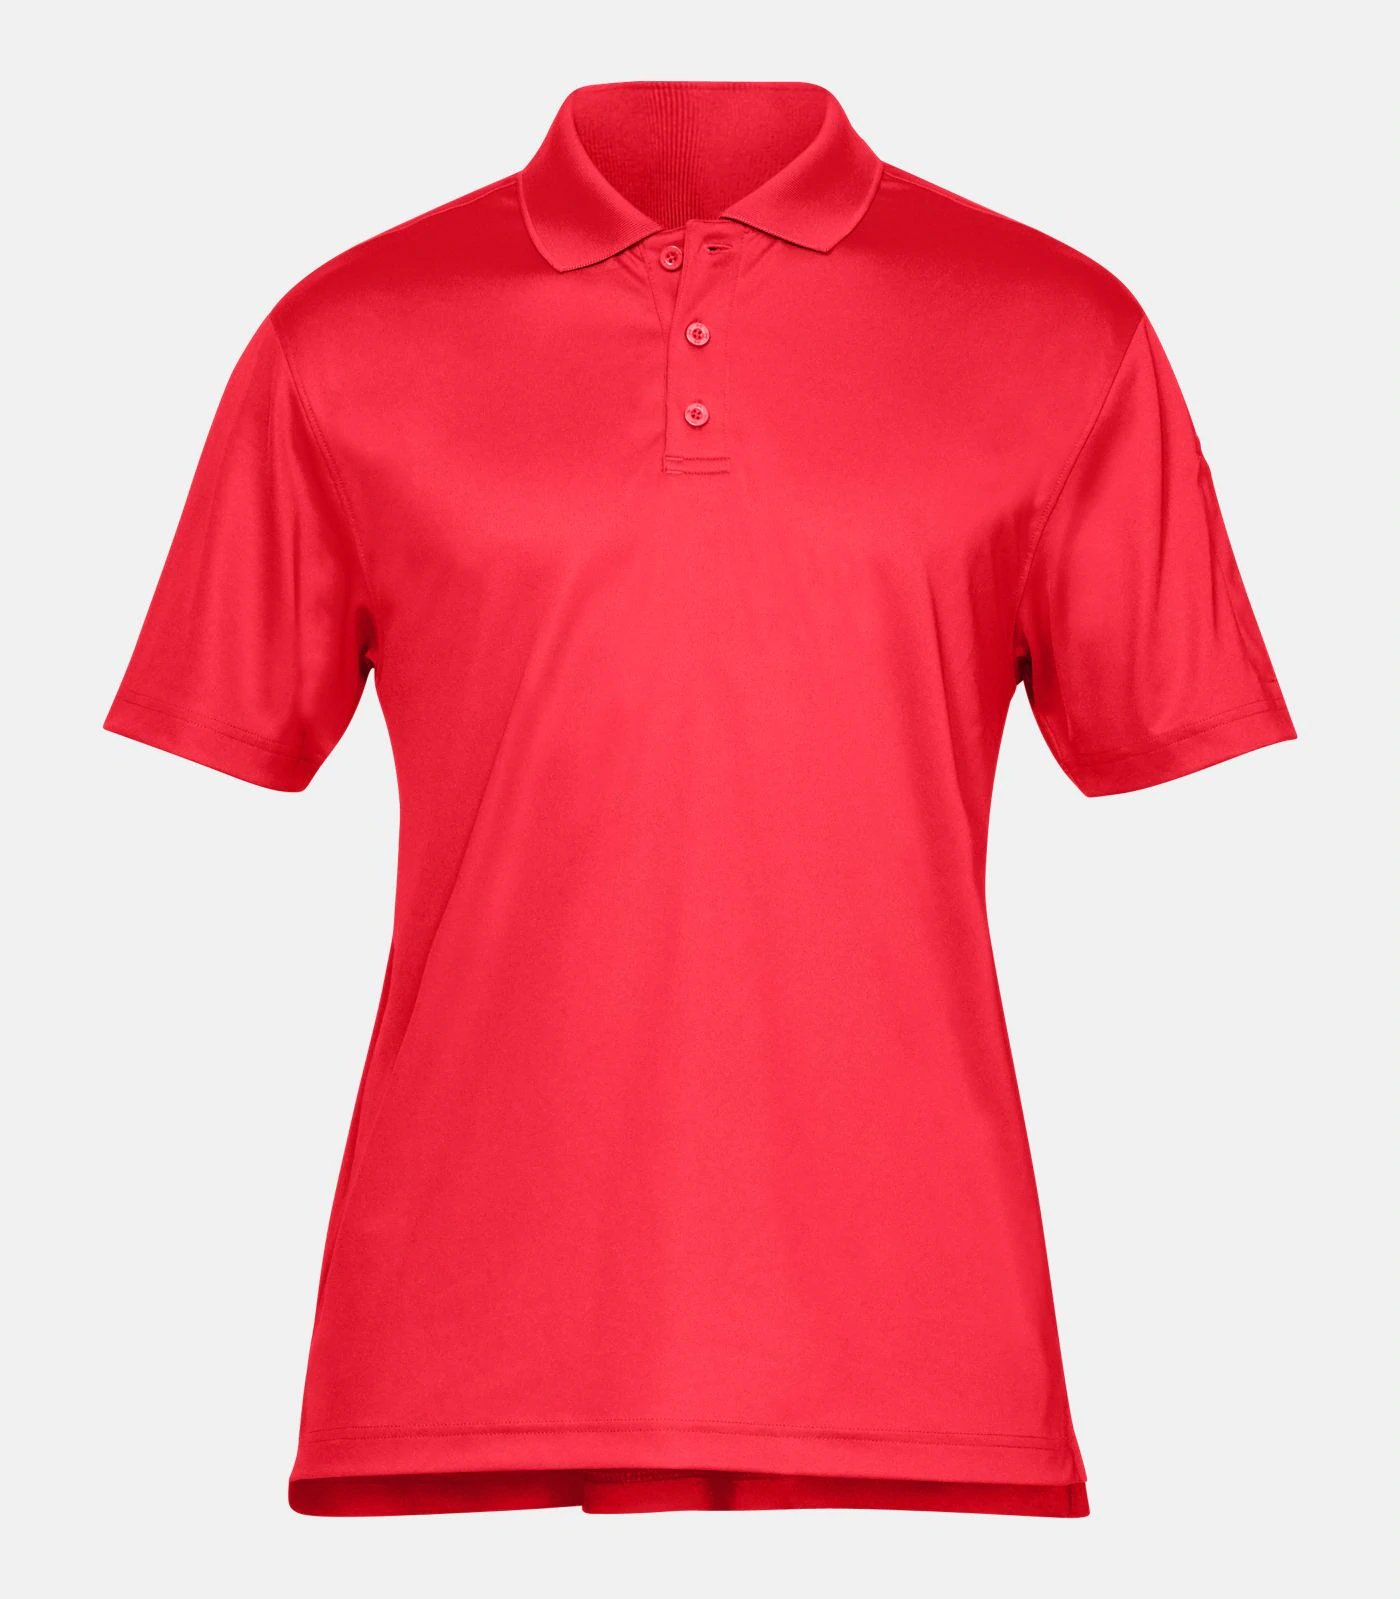 MENS_POLO_TacPerformance-SS_UAR1279759600_04